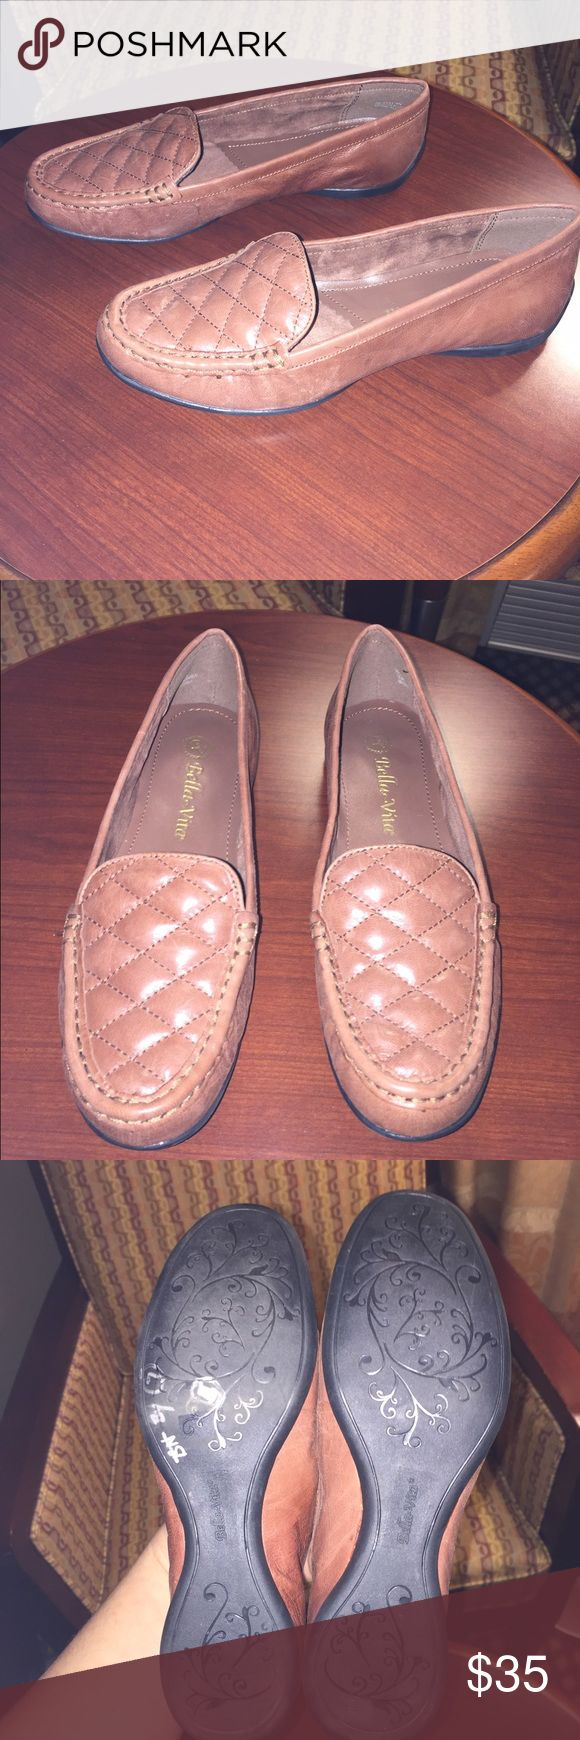 BRAND NEW Bella vita Loafers quilted top design Excellent condition. Light brown. NARROW bella vita Shoes Flats & Loafers